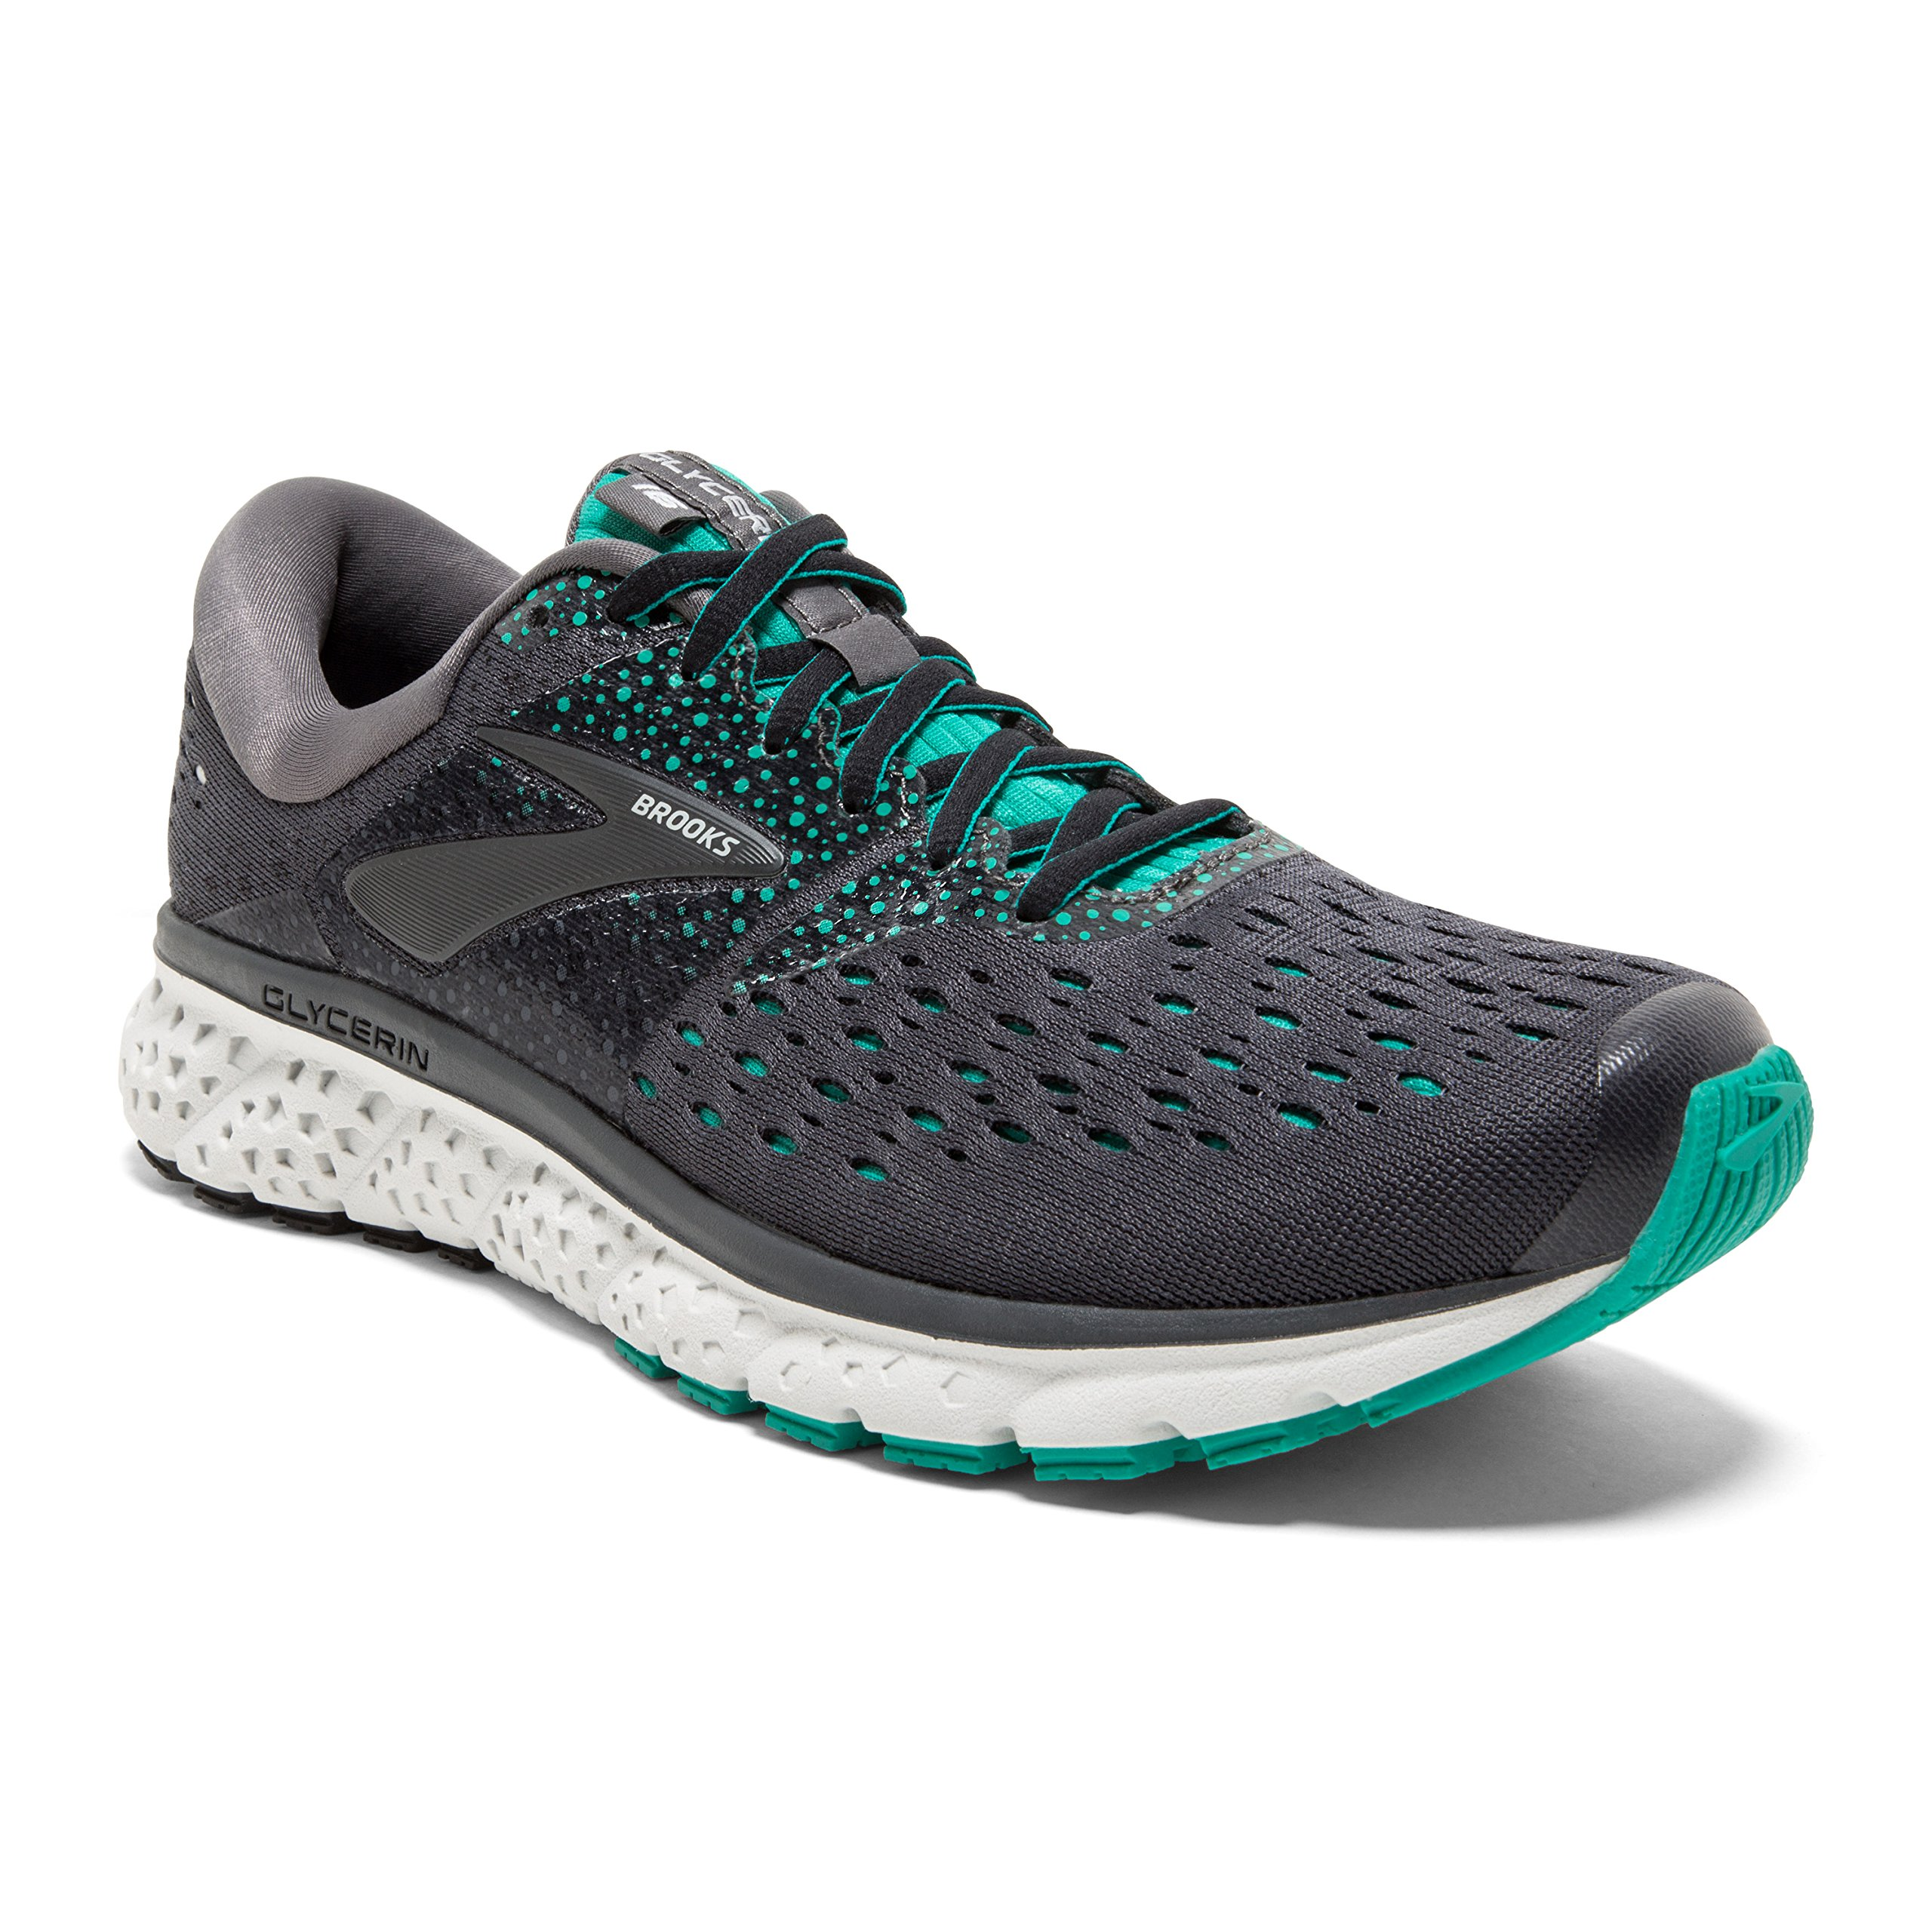 Brooks Womens Glycerin 16 - Ebony/Green/Black - B - 10.0 by Brooks